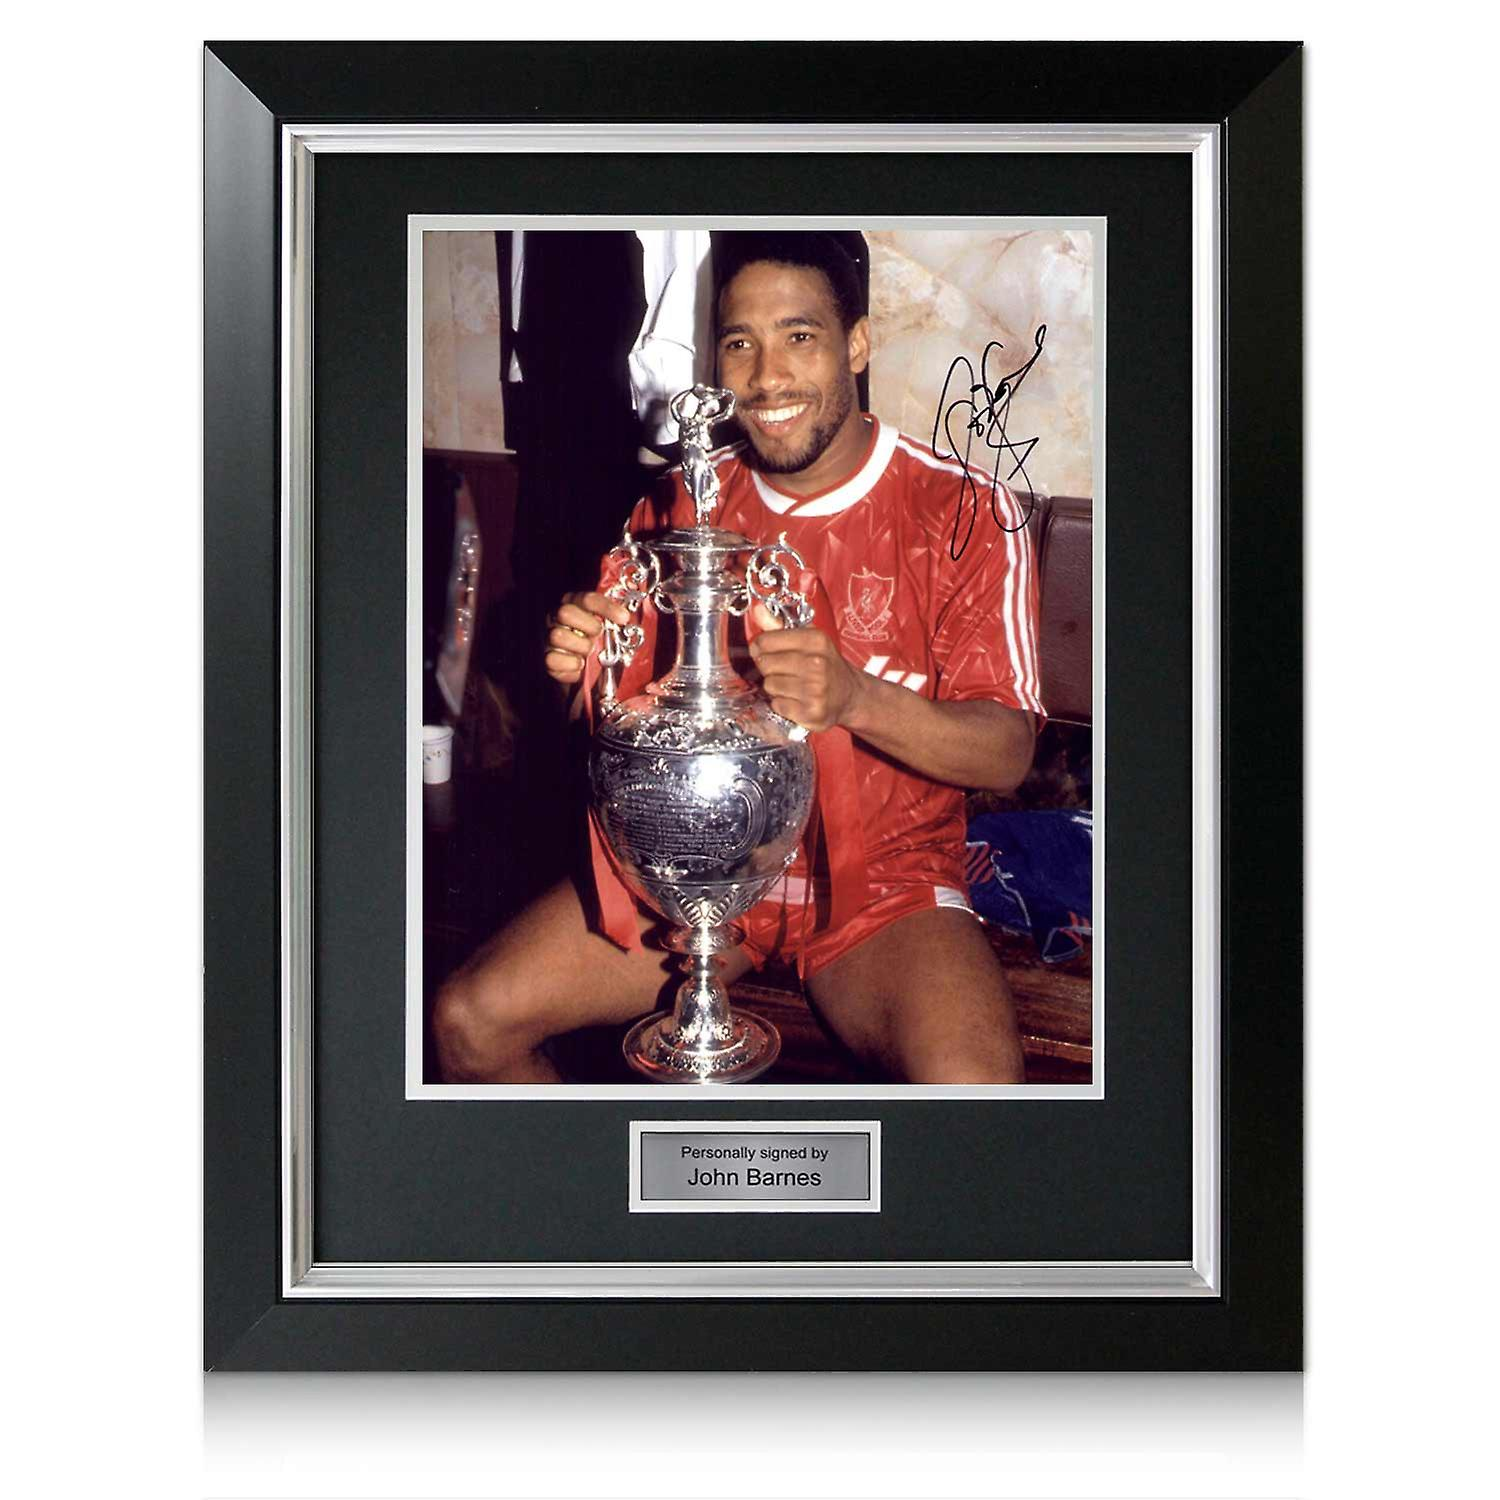 John Barnes Signed Liverpool Photo: Holding The League Trophy. Deluxe Frame